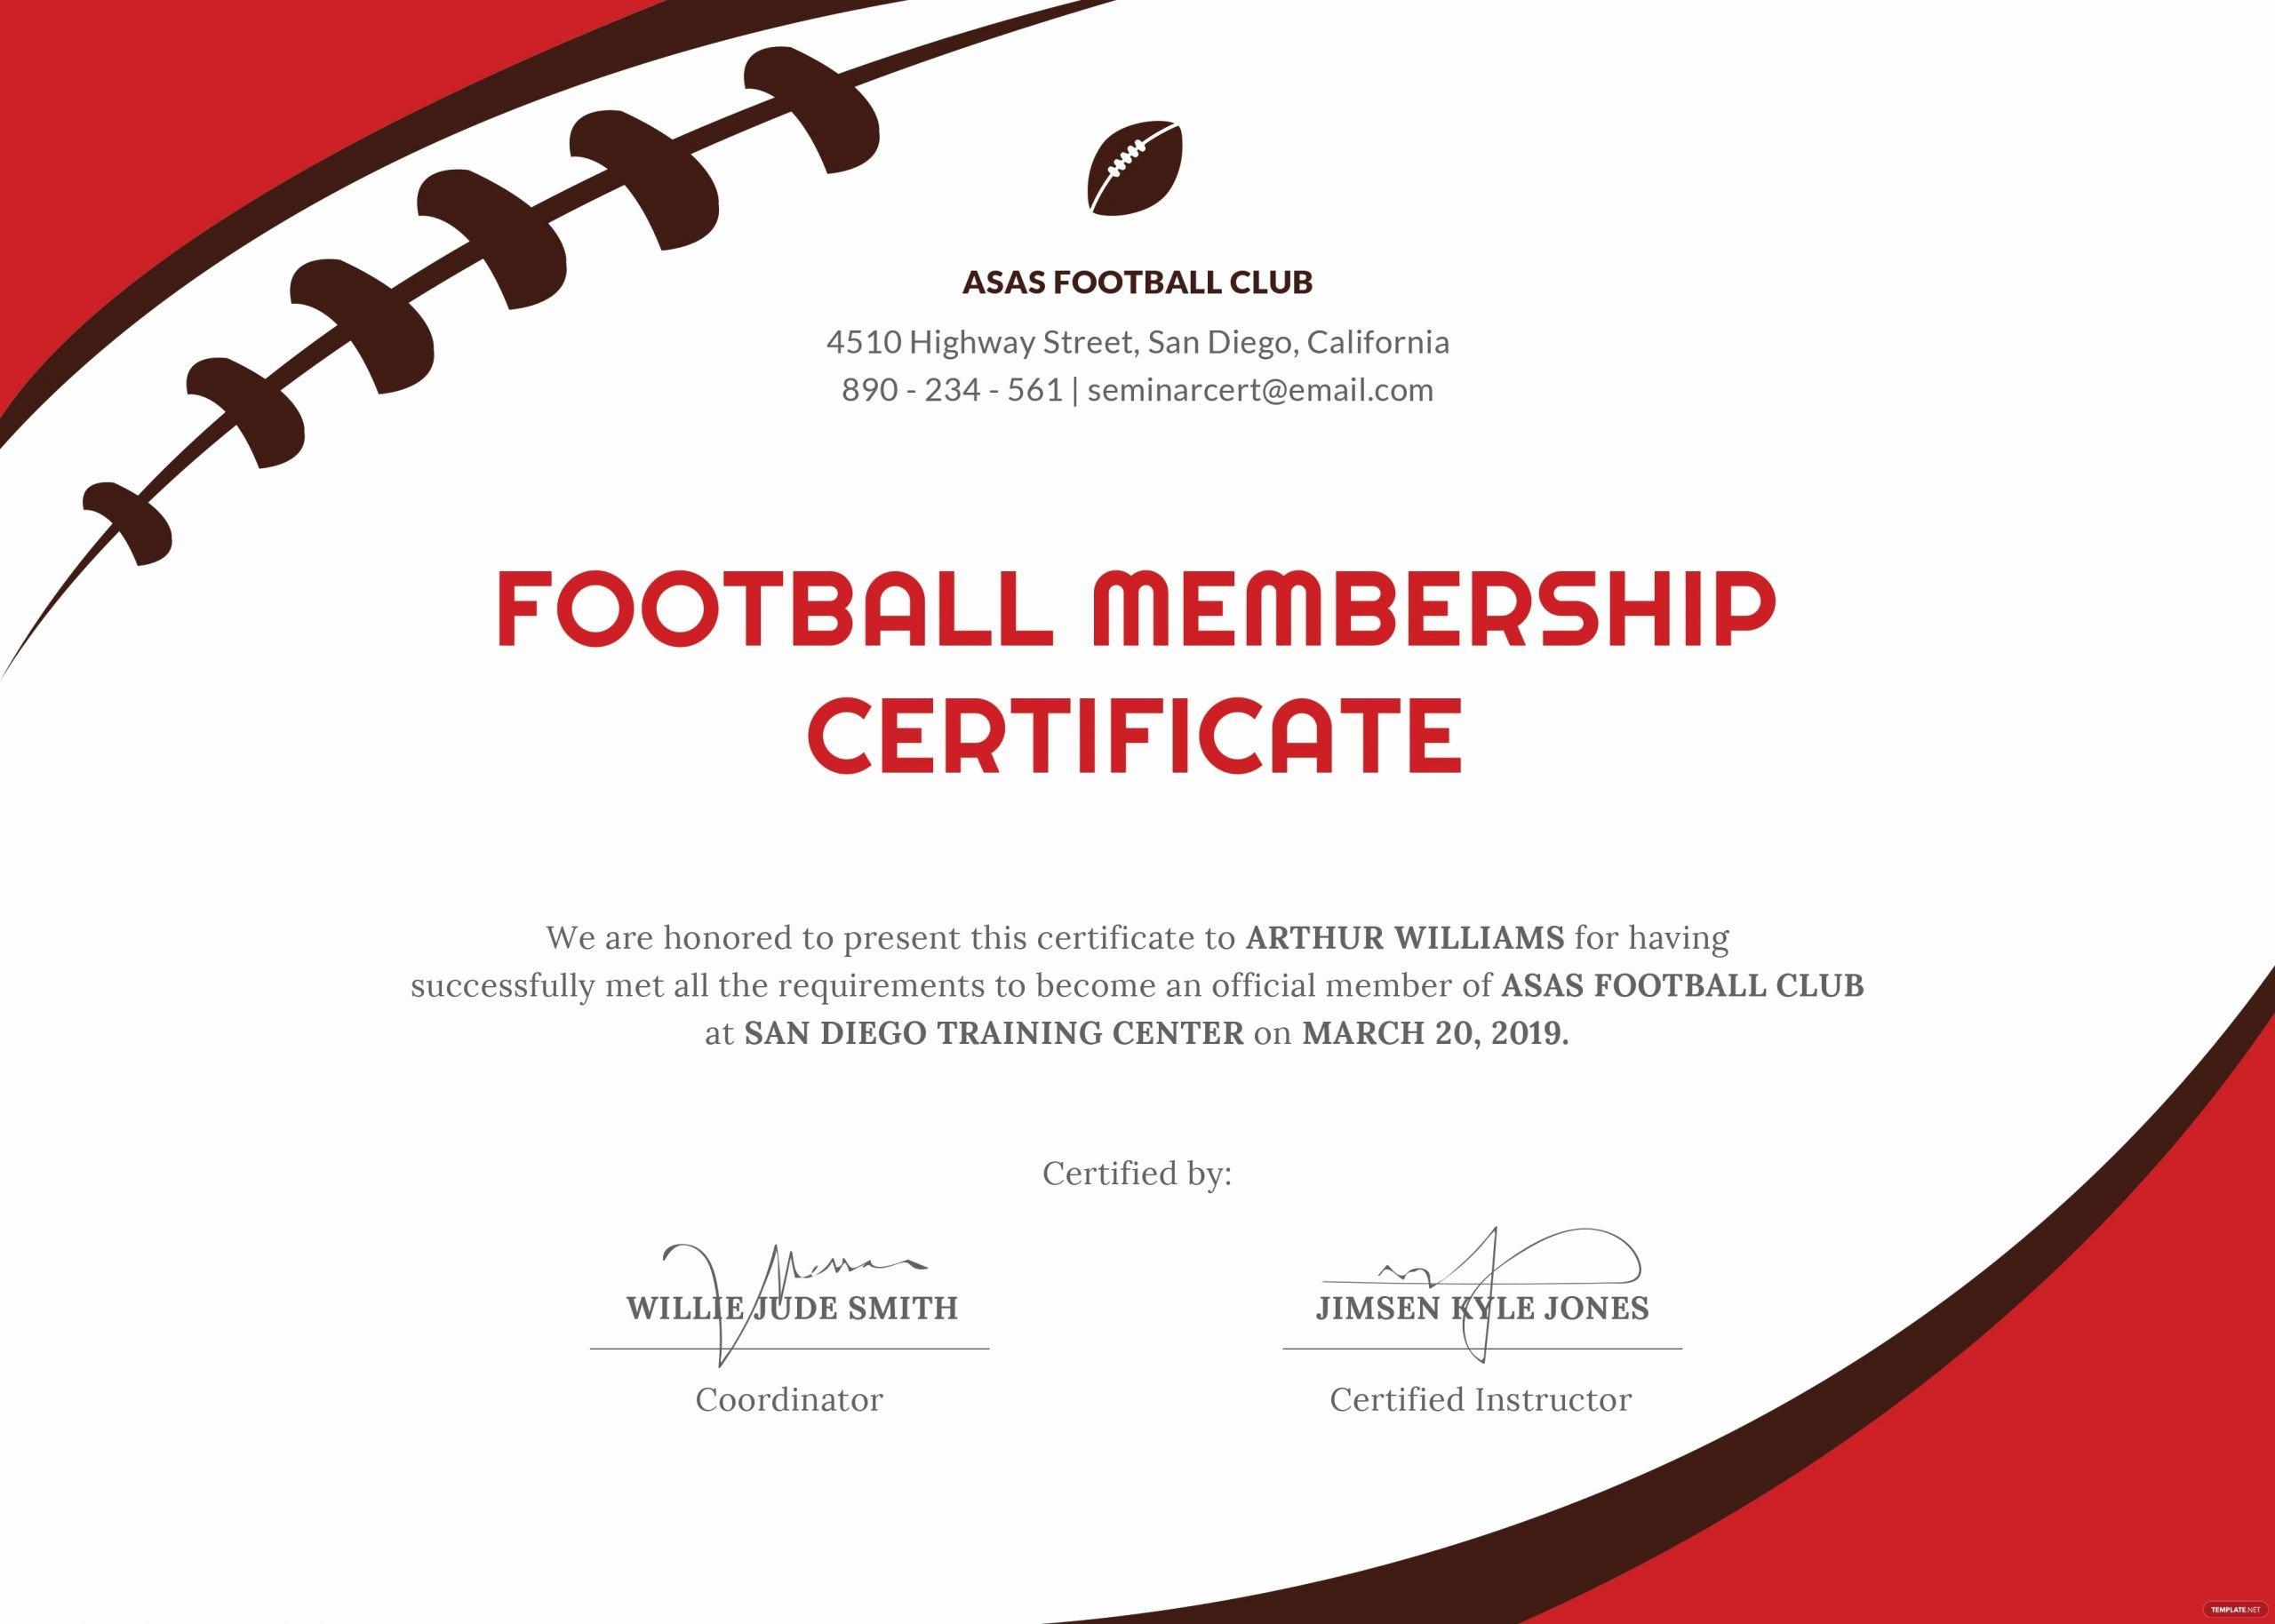 Free Football Certificate Template New Free Football Certificate Template In Psd Ms Word